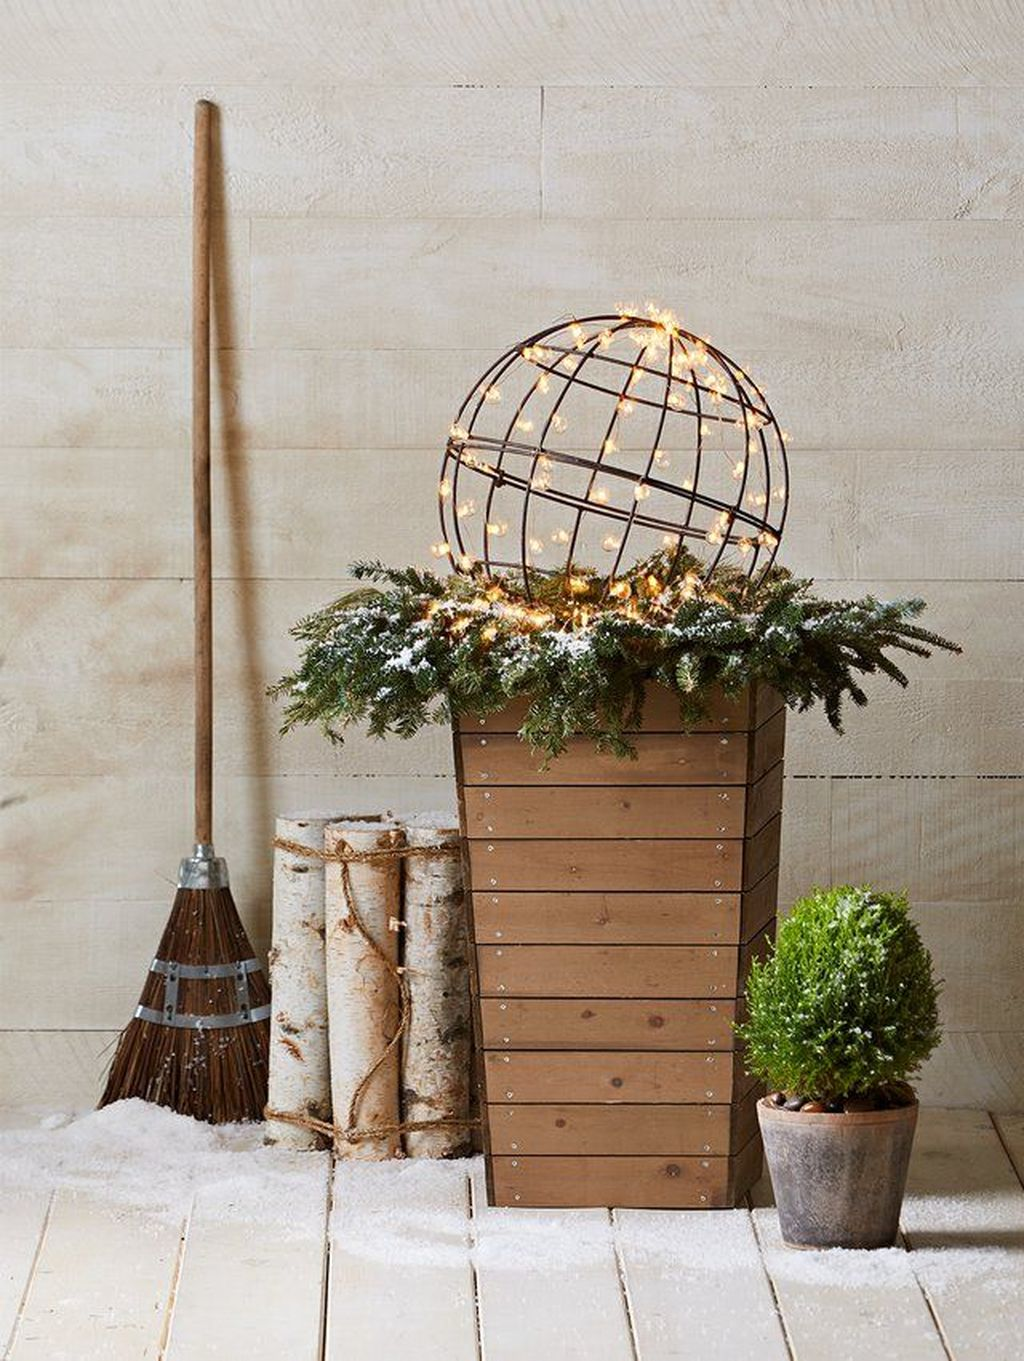 Popular Outdoor Decor Ideas For This Winter 08